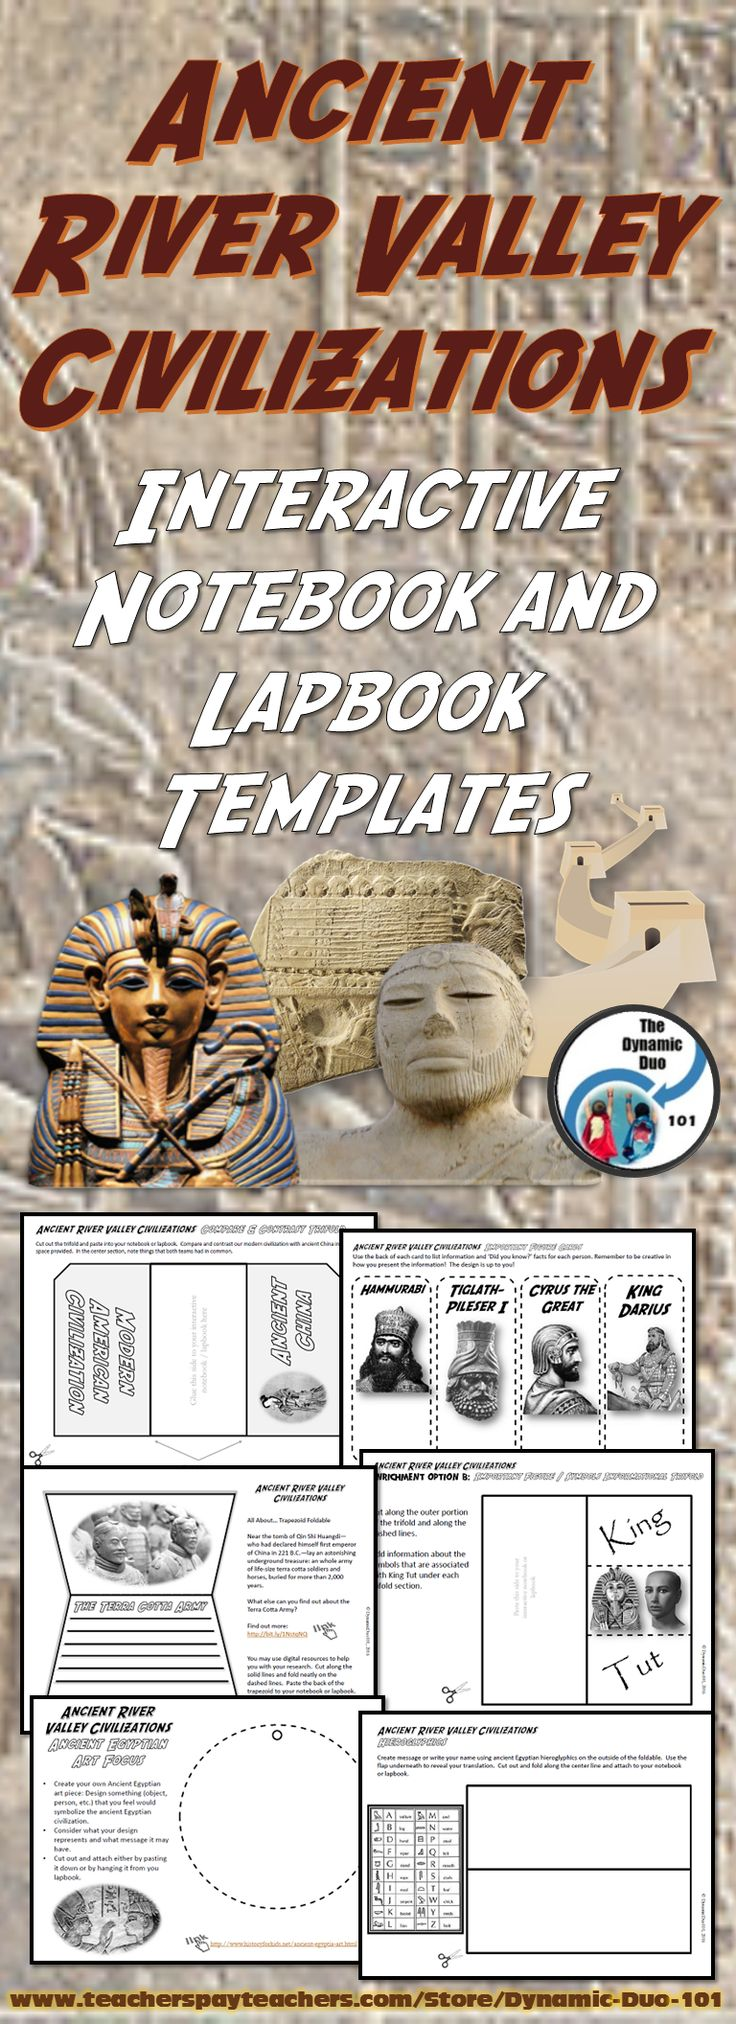 NEW! Ancient River Valley Civilizations Interactive Notebook & Lapbook Activities contains 64 pages of engaging interactive notebook and lapbook activities!